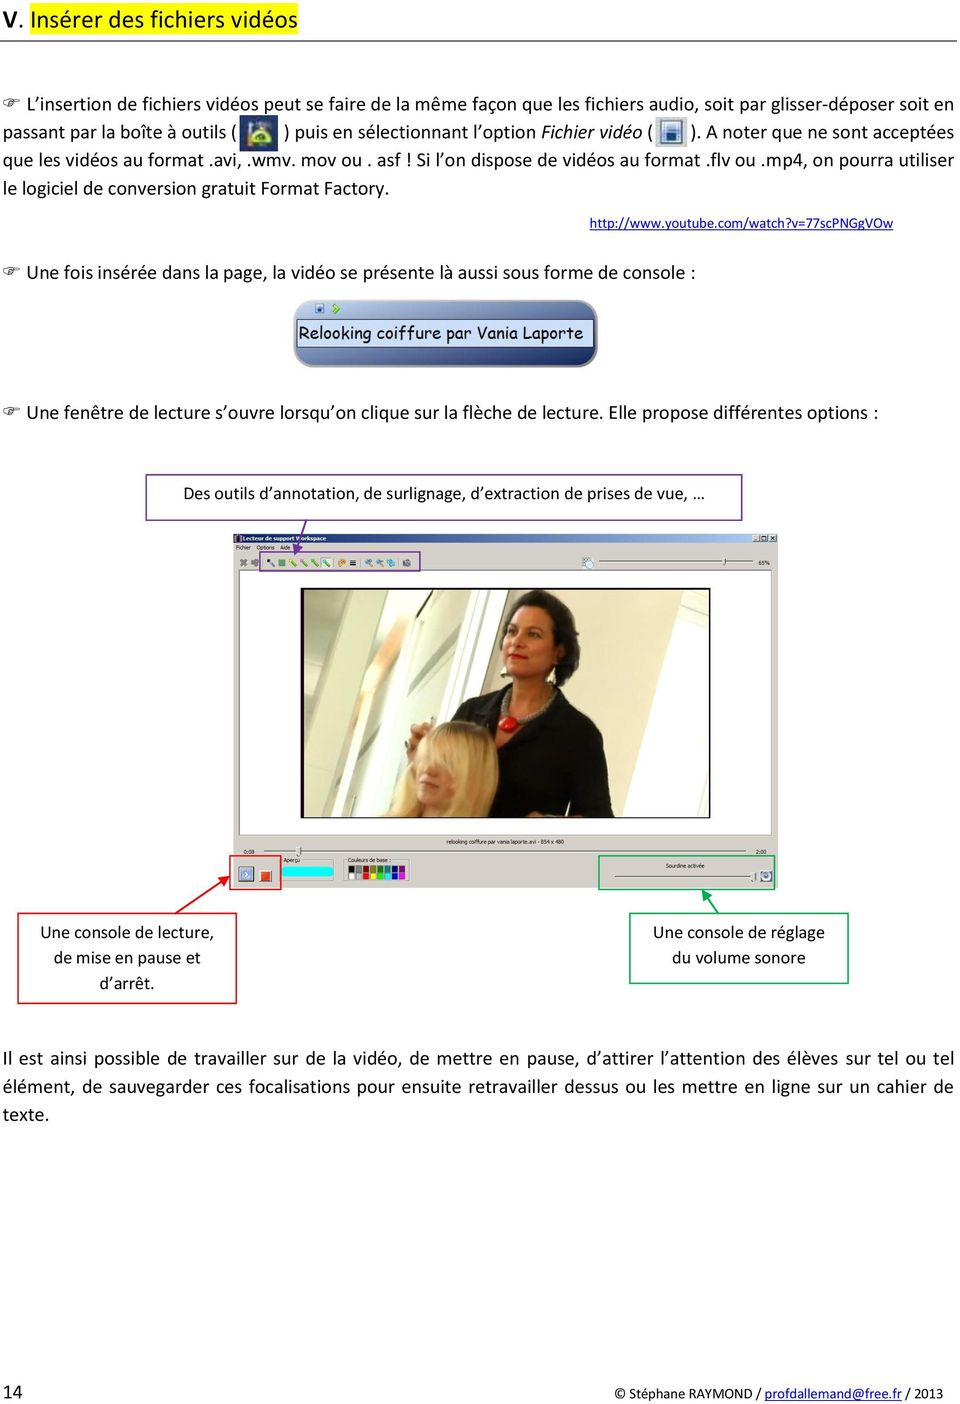 mp4, on pourra utiliser le logiciel de conversion gratuit Format Factory. http://www.youtube.com/watch?